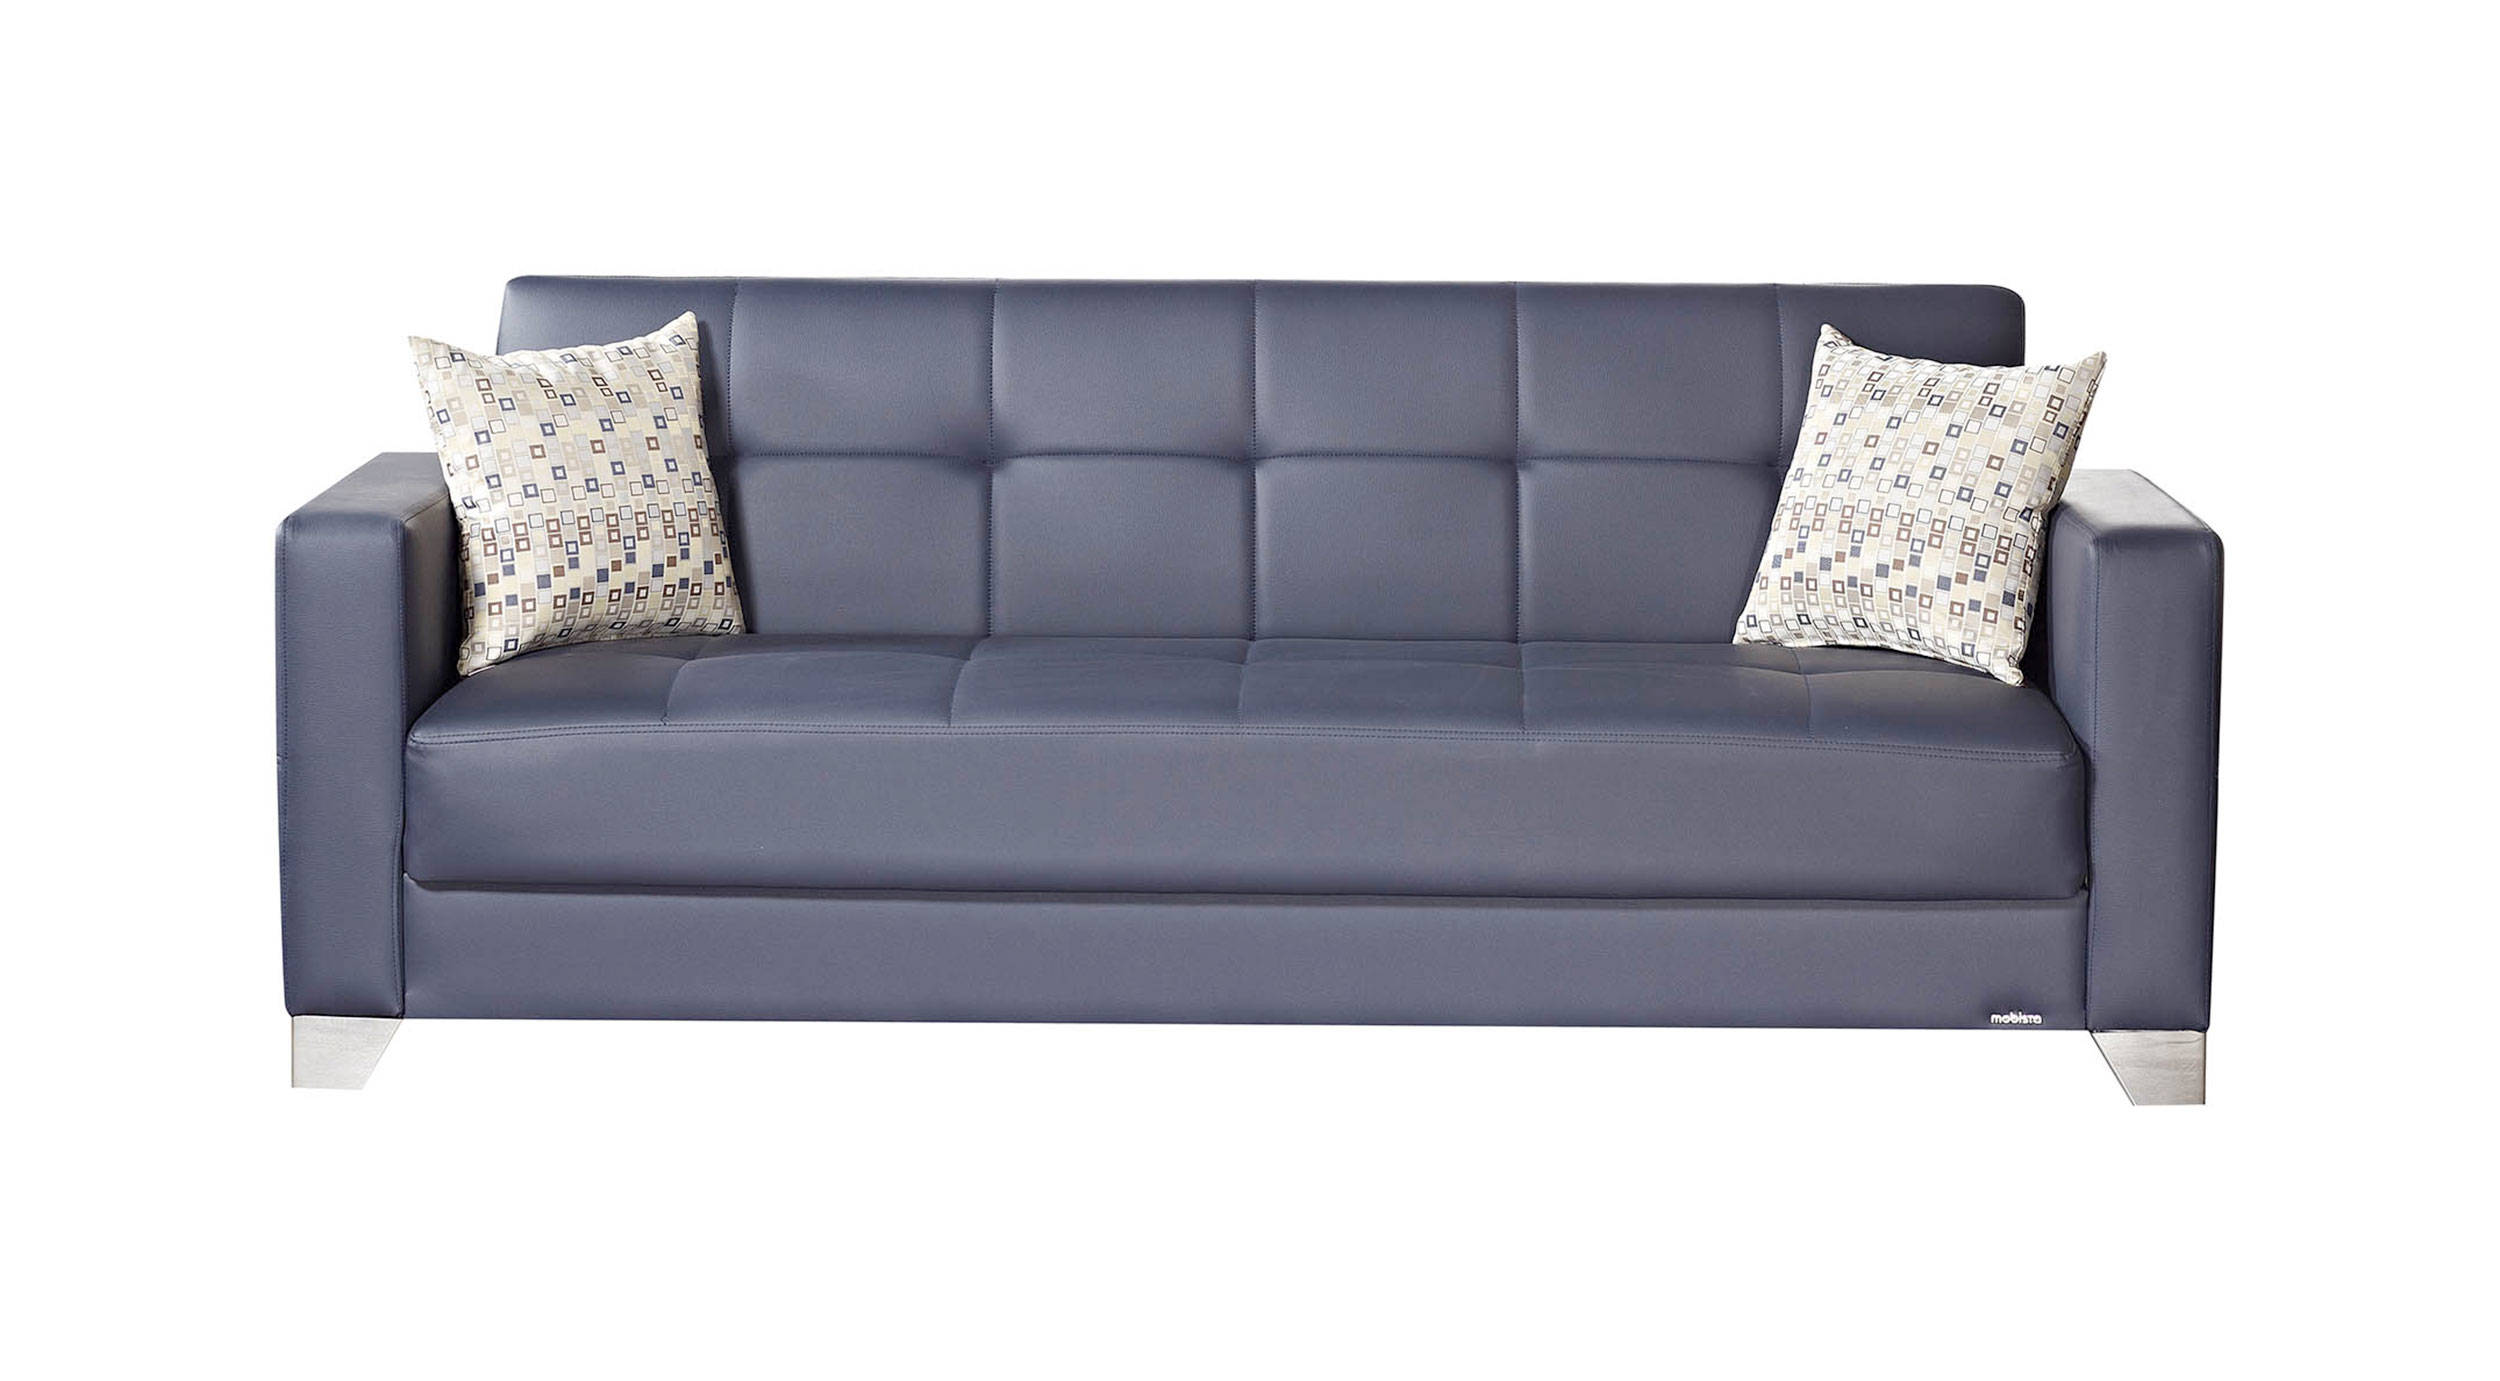 Awesome Viva Italia Prestige Navy Blue Faux Leather Mdf Plywood Sofa Squirreltailoven Fun Painted Chair Ideas Images Squirreltailovenorg